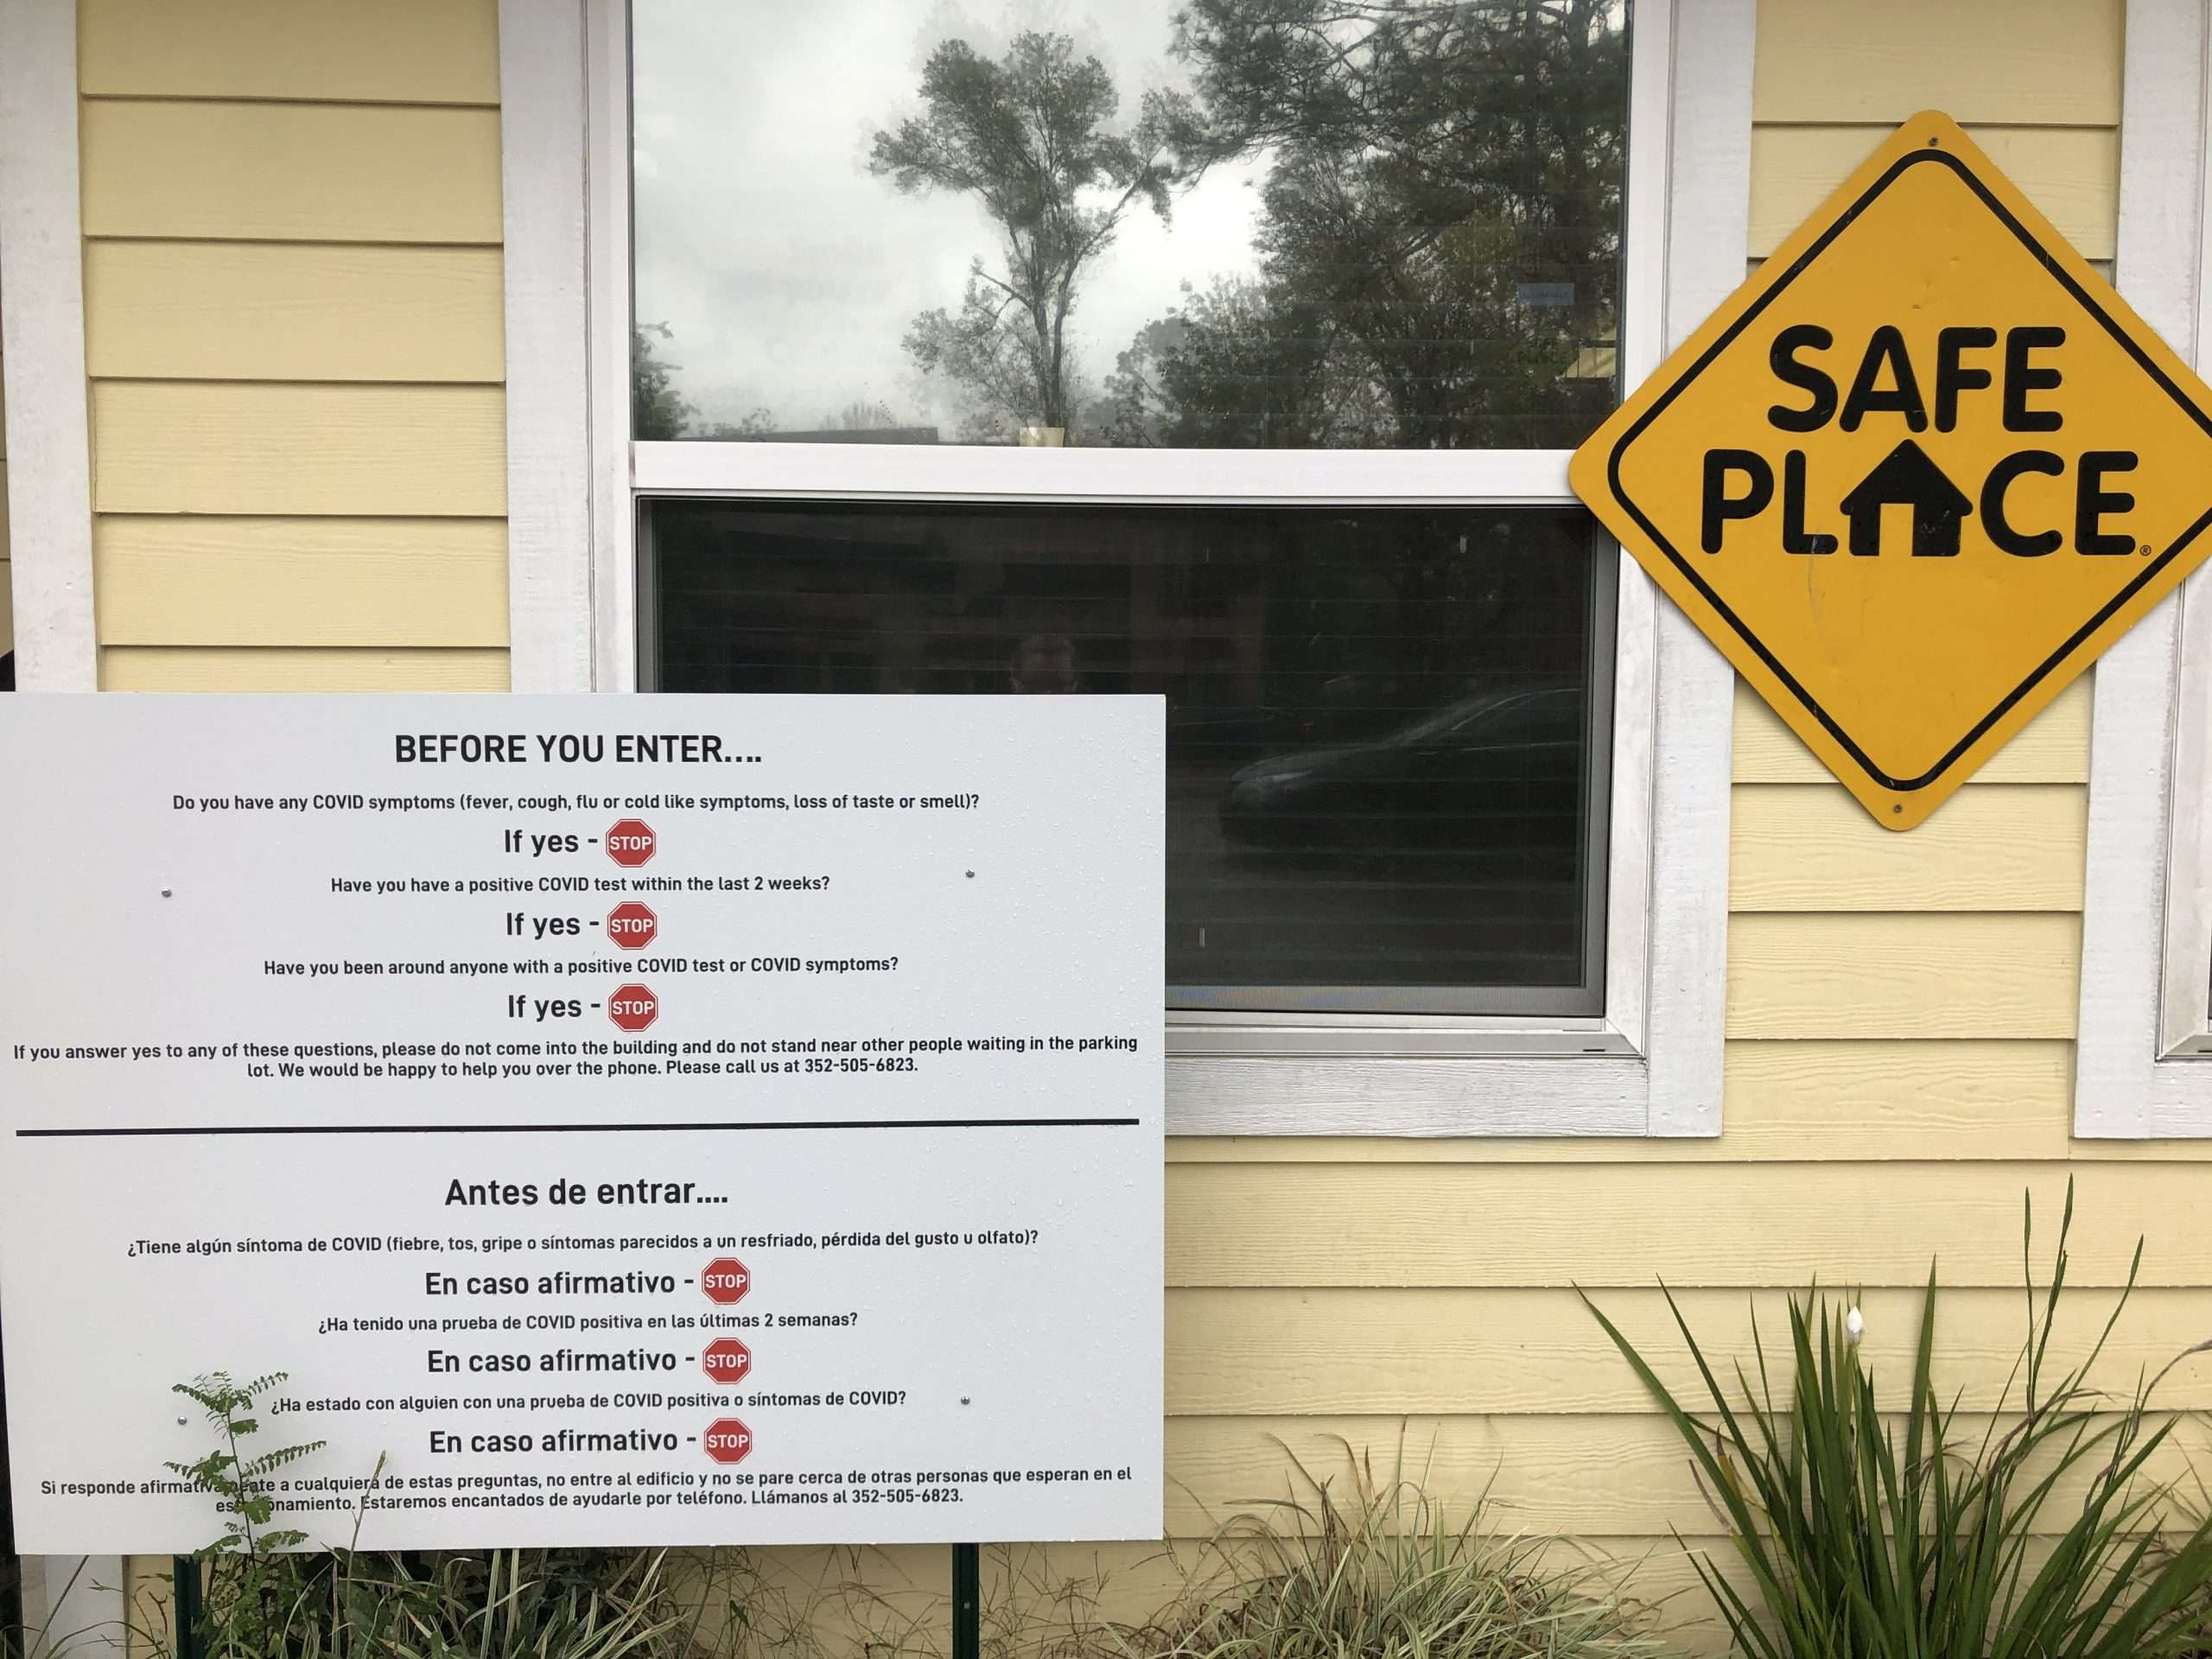 Signage in front of the building listing COVID precautions